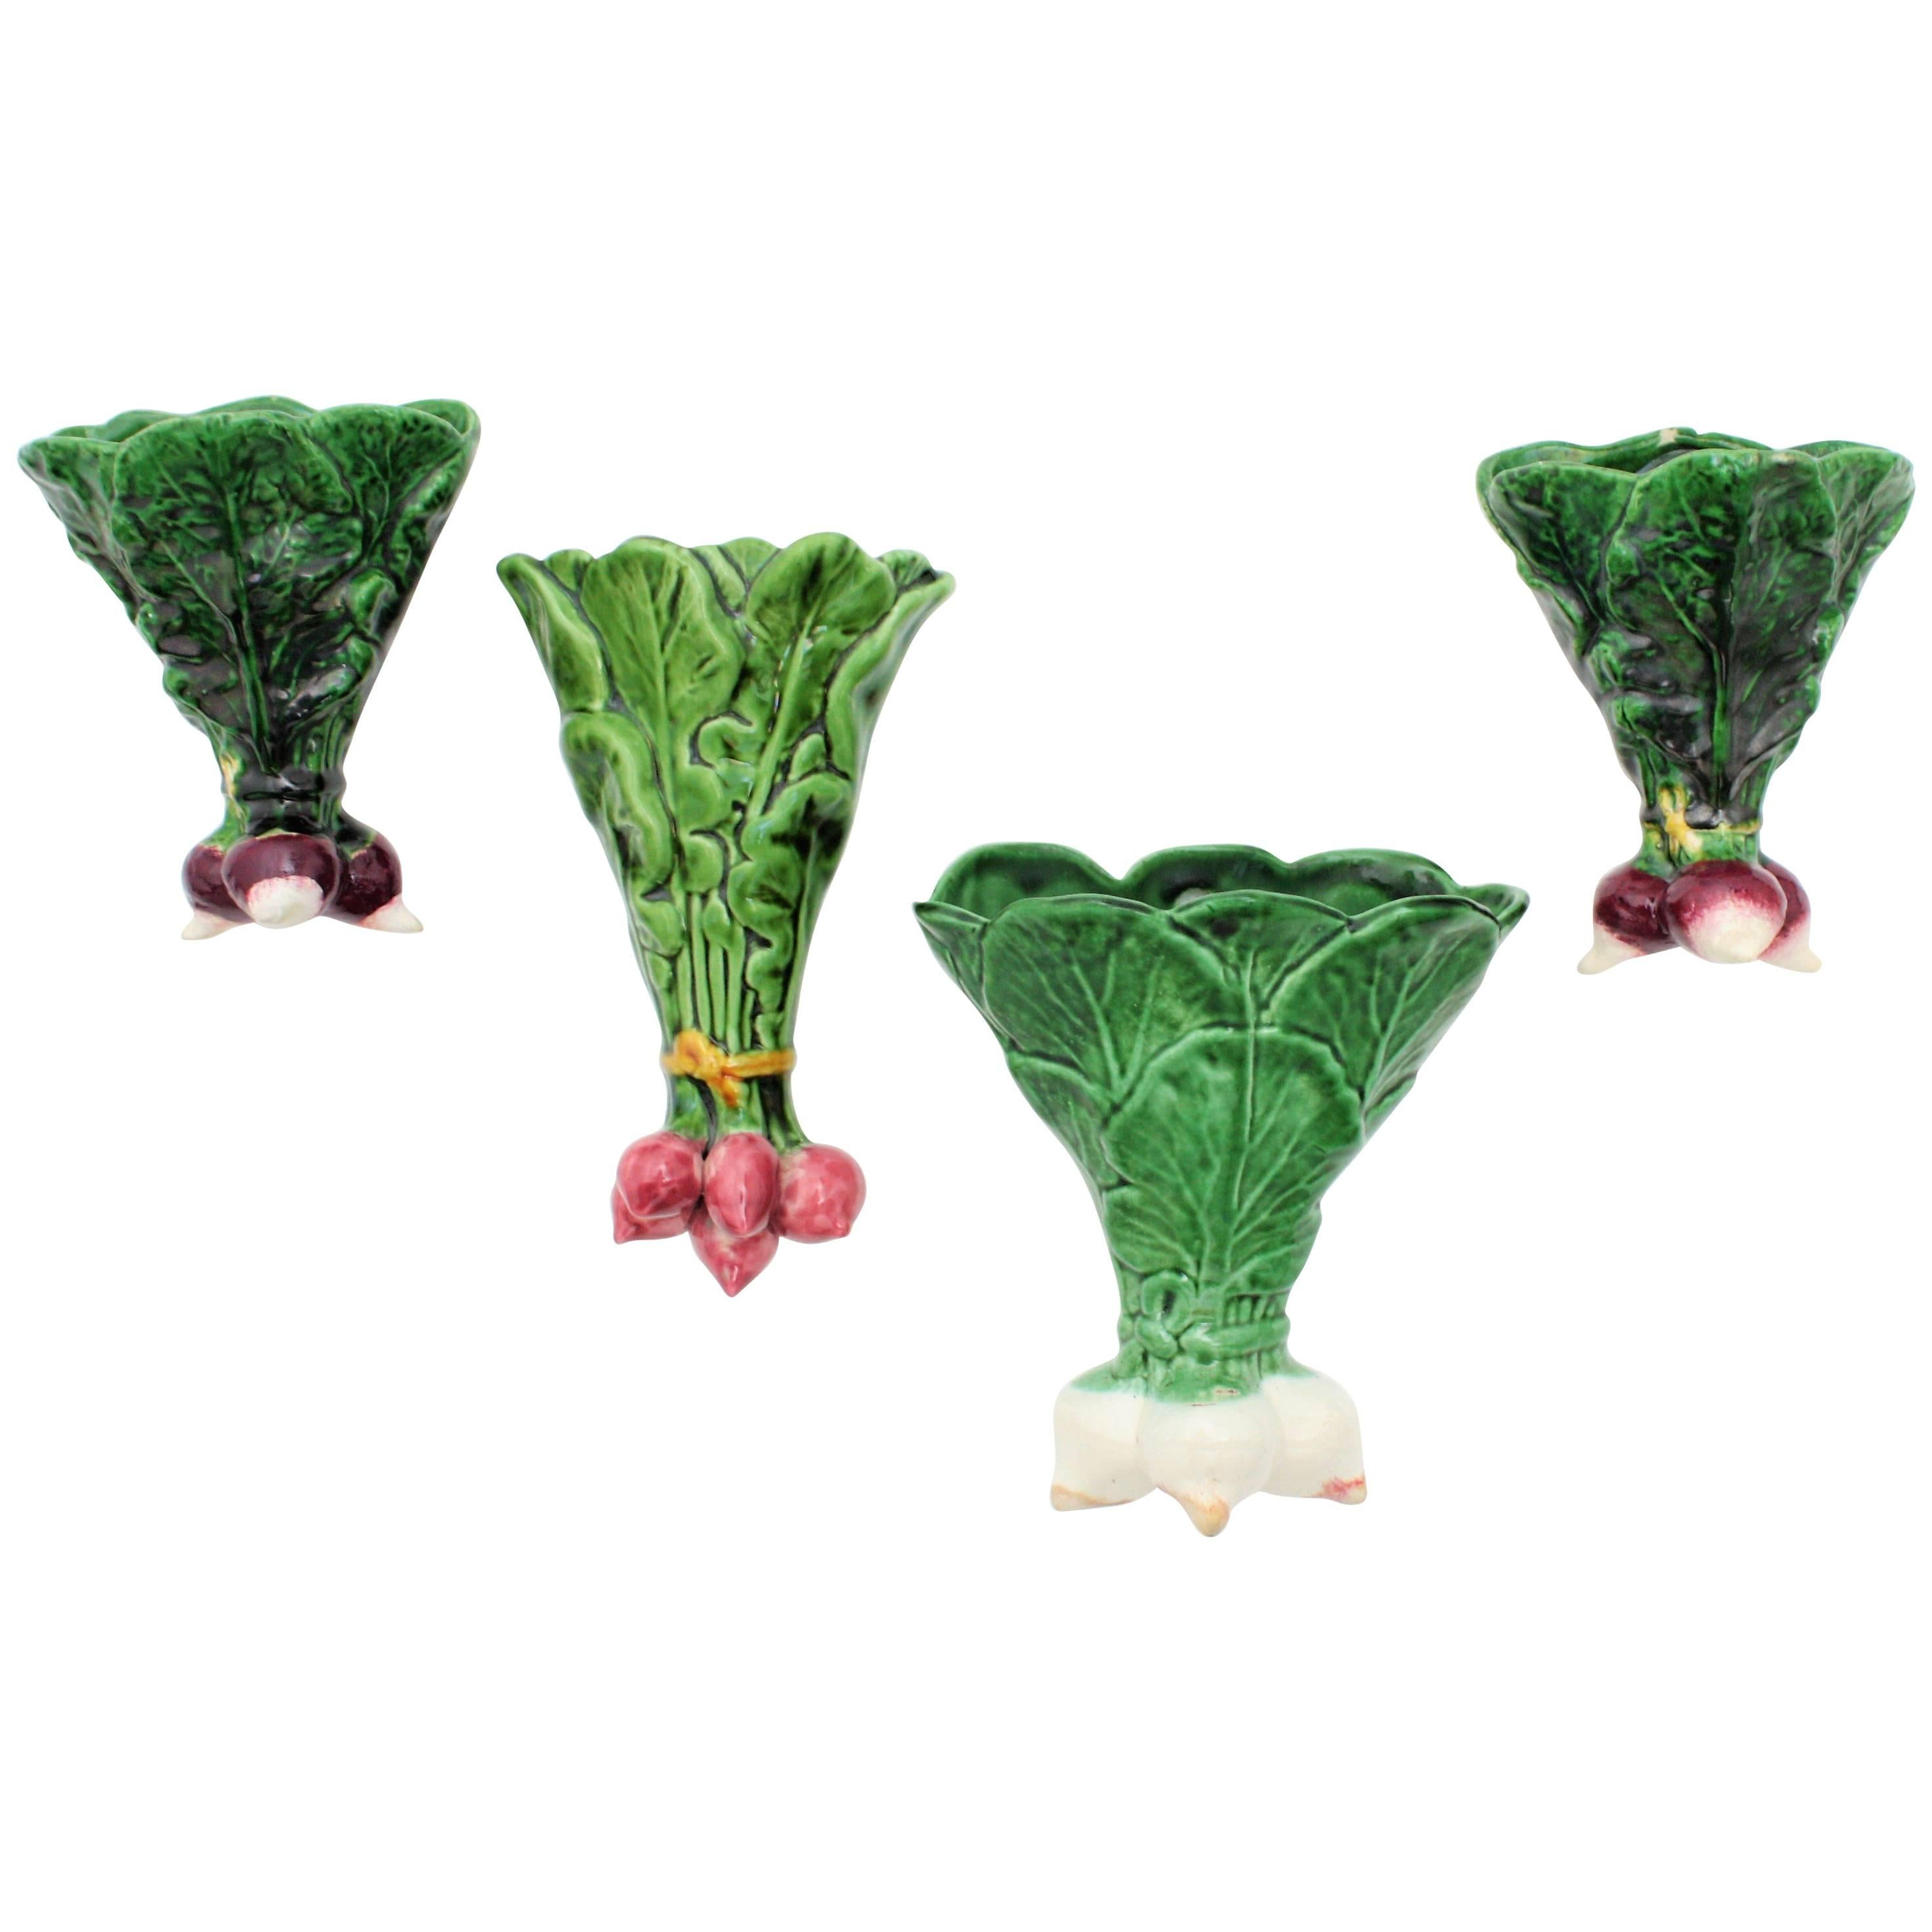 Unusual Planters For Sale Part - 32: Unusual 1950s Portuguese Majolica Vegetables Ceramic Wall Planters Set 1